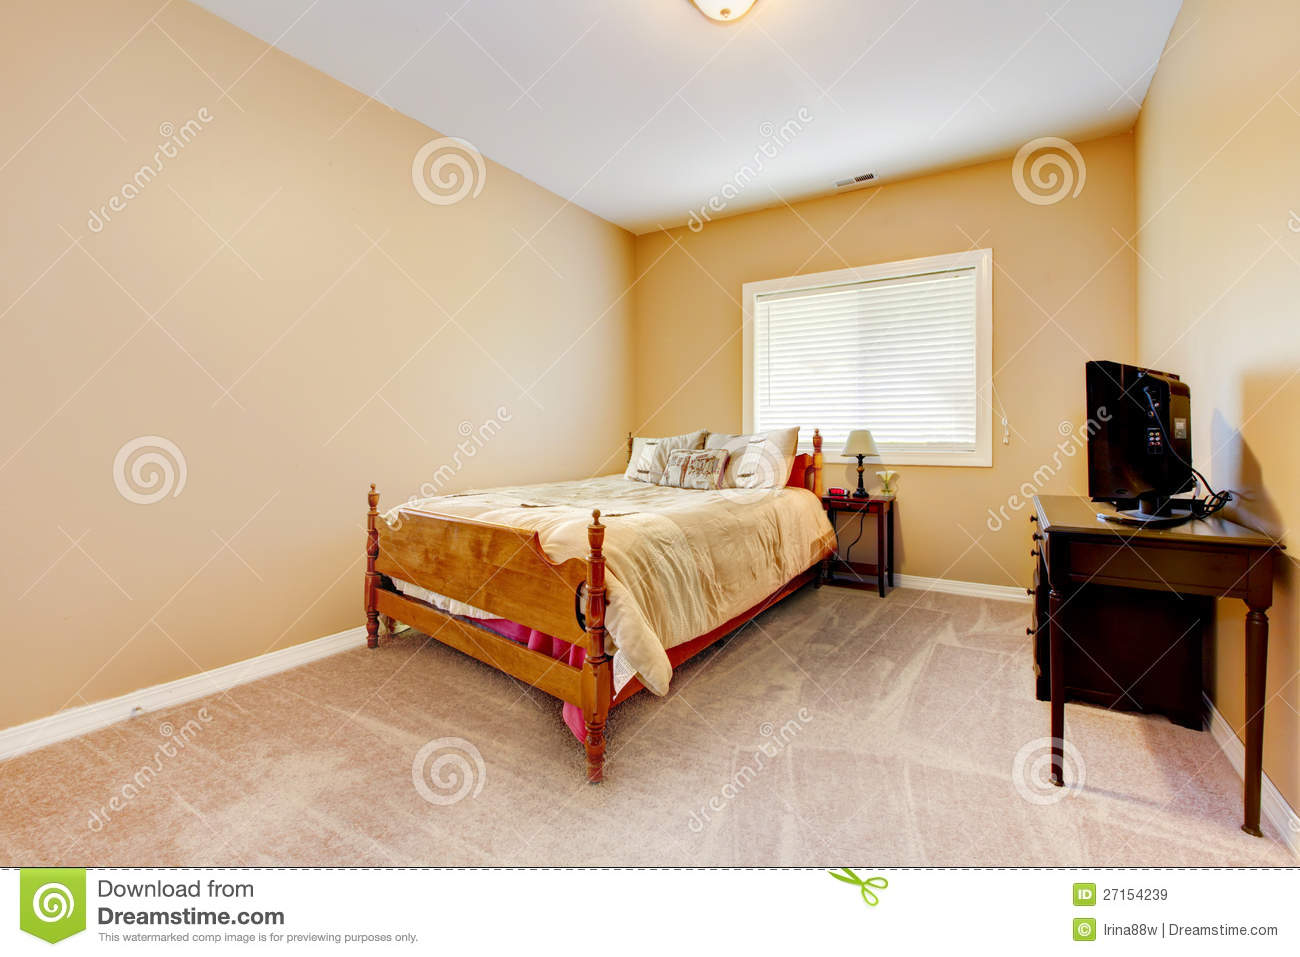 Large bedroom with yellow walls and beige carpet royalty for Bedroom yellow walls